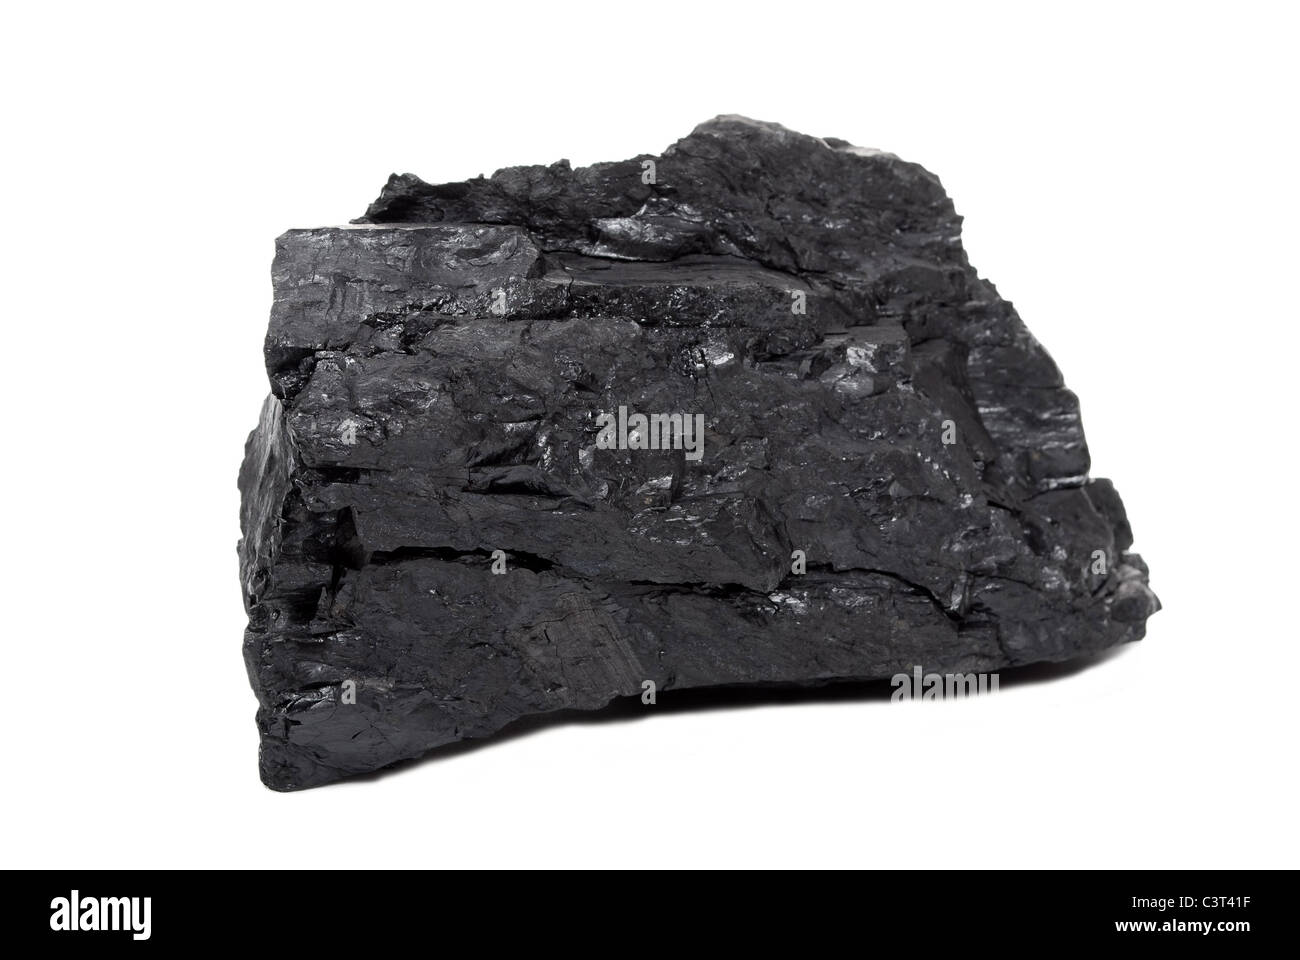 Coal - Stock Image